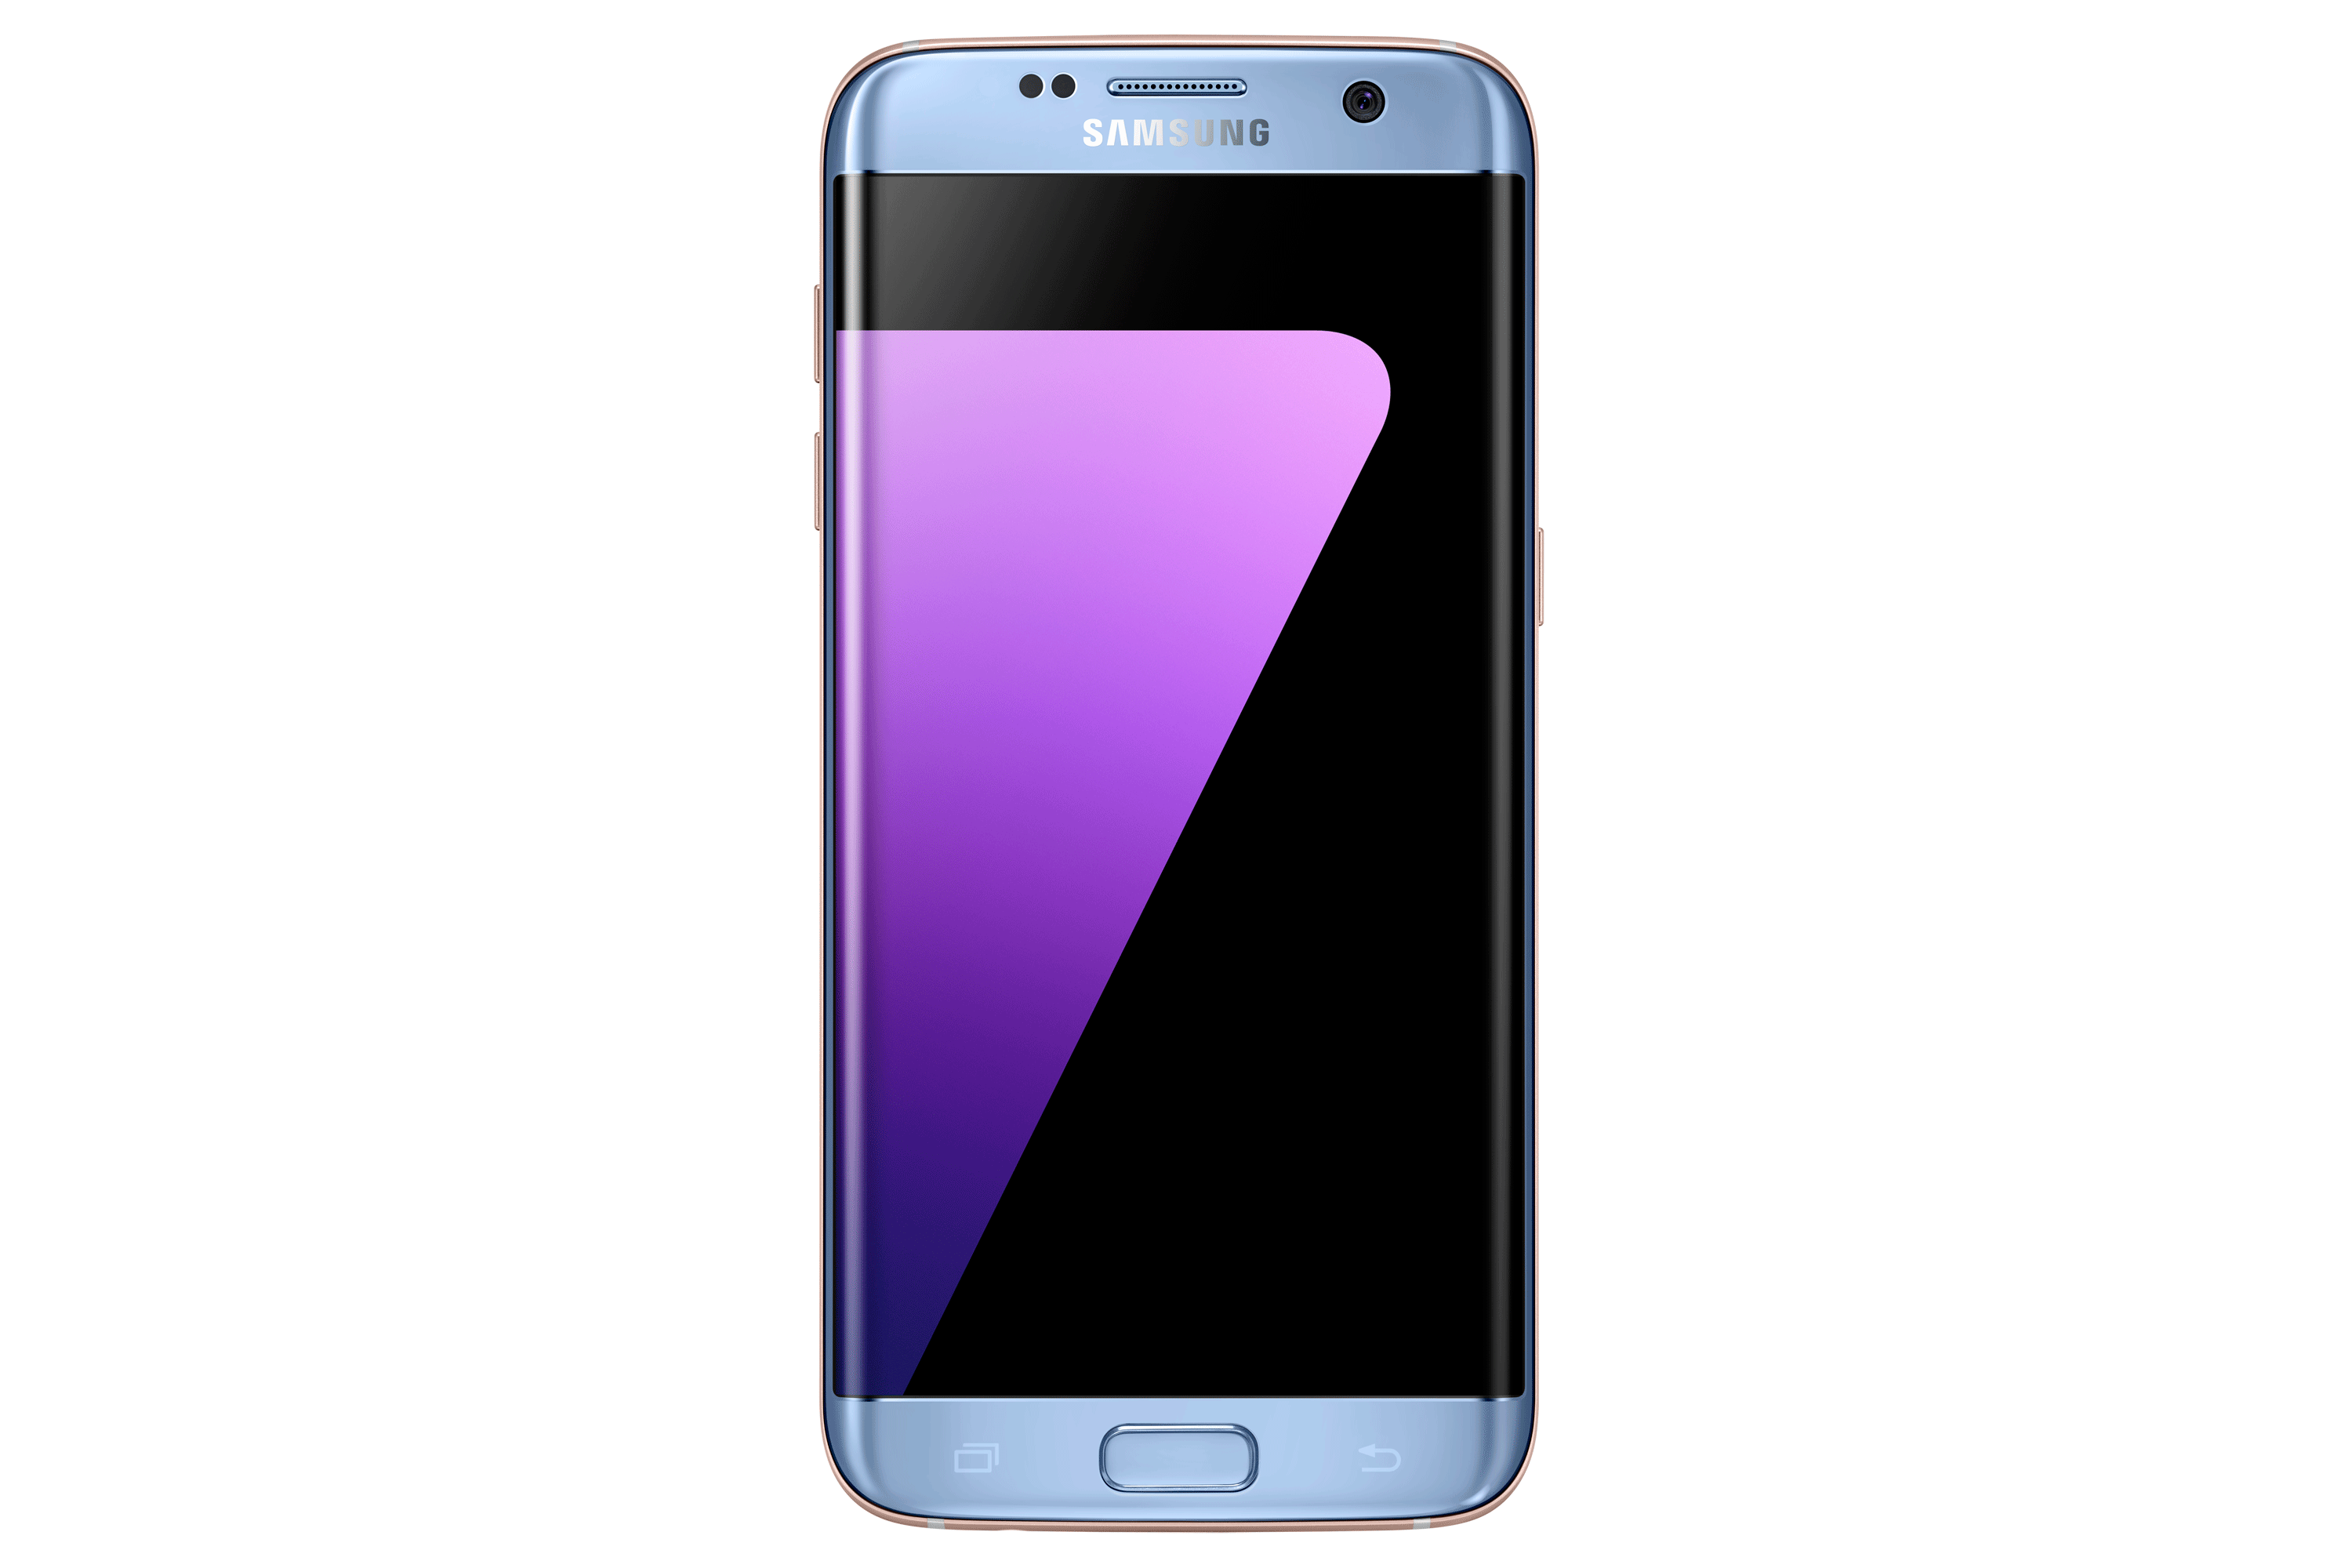 Galaxy S7 edge (64GB)